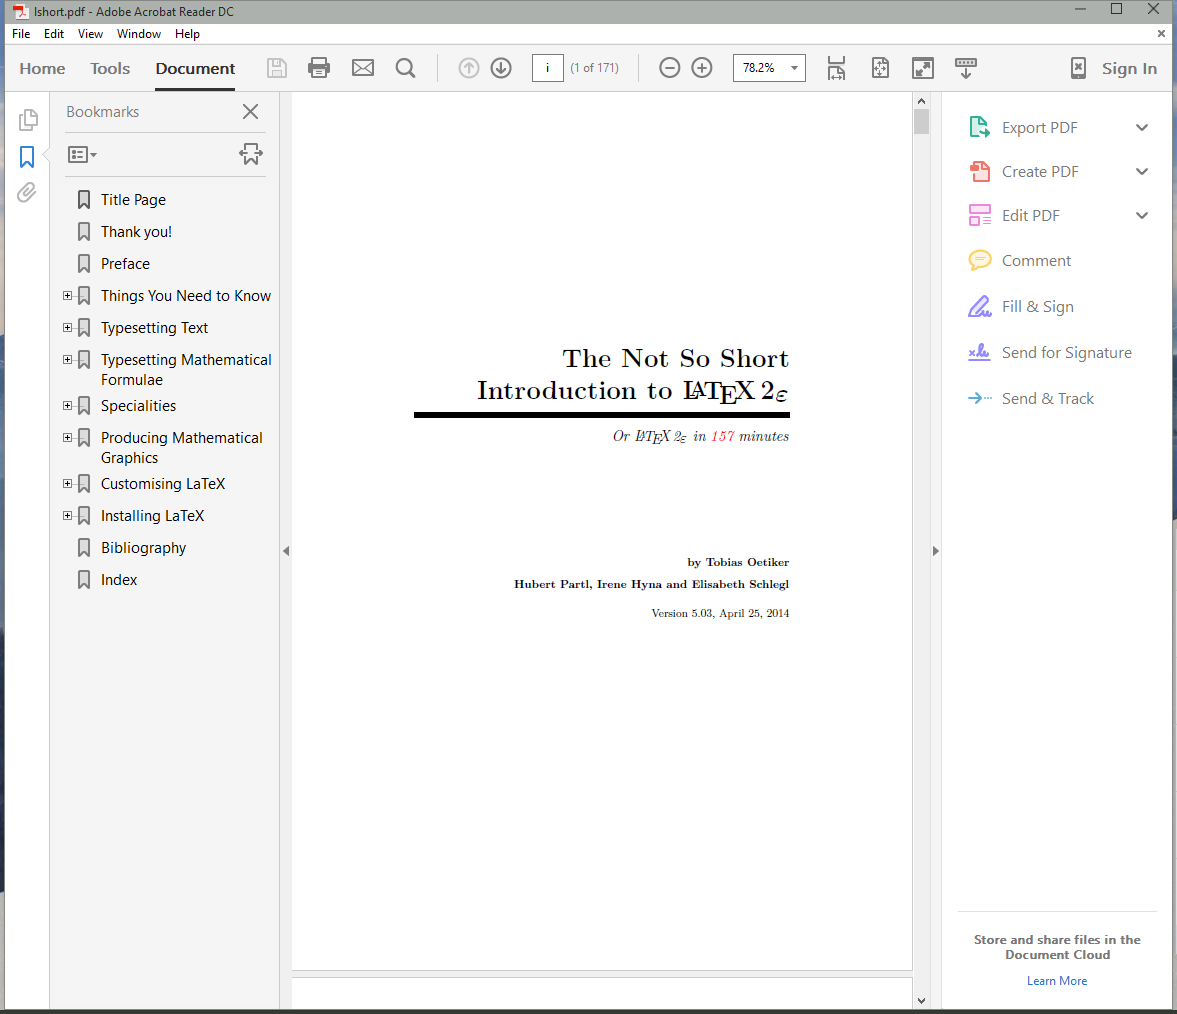 Adobe Acrobat Reader DC For Mac Free Download And